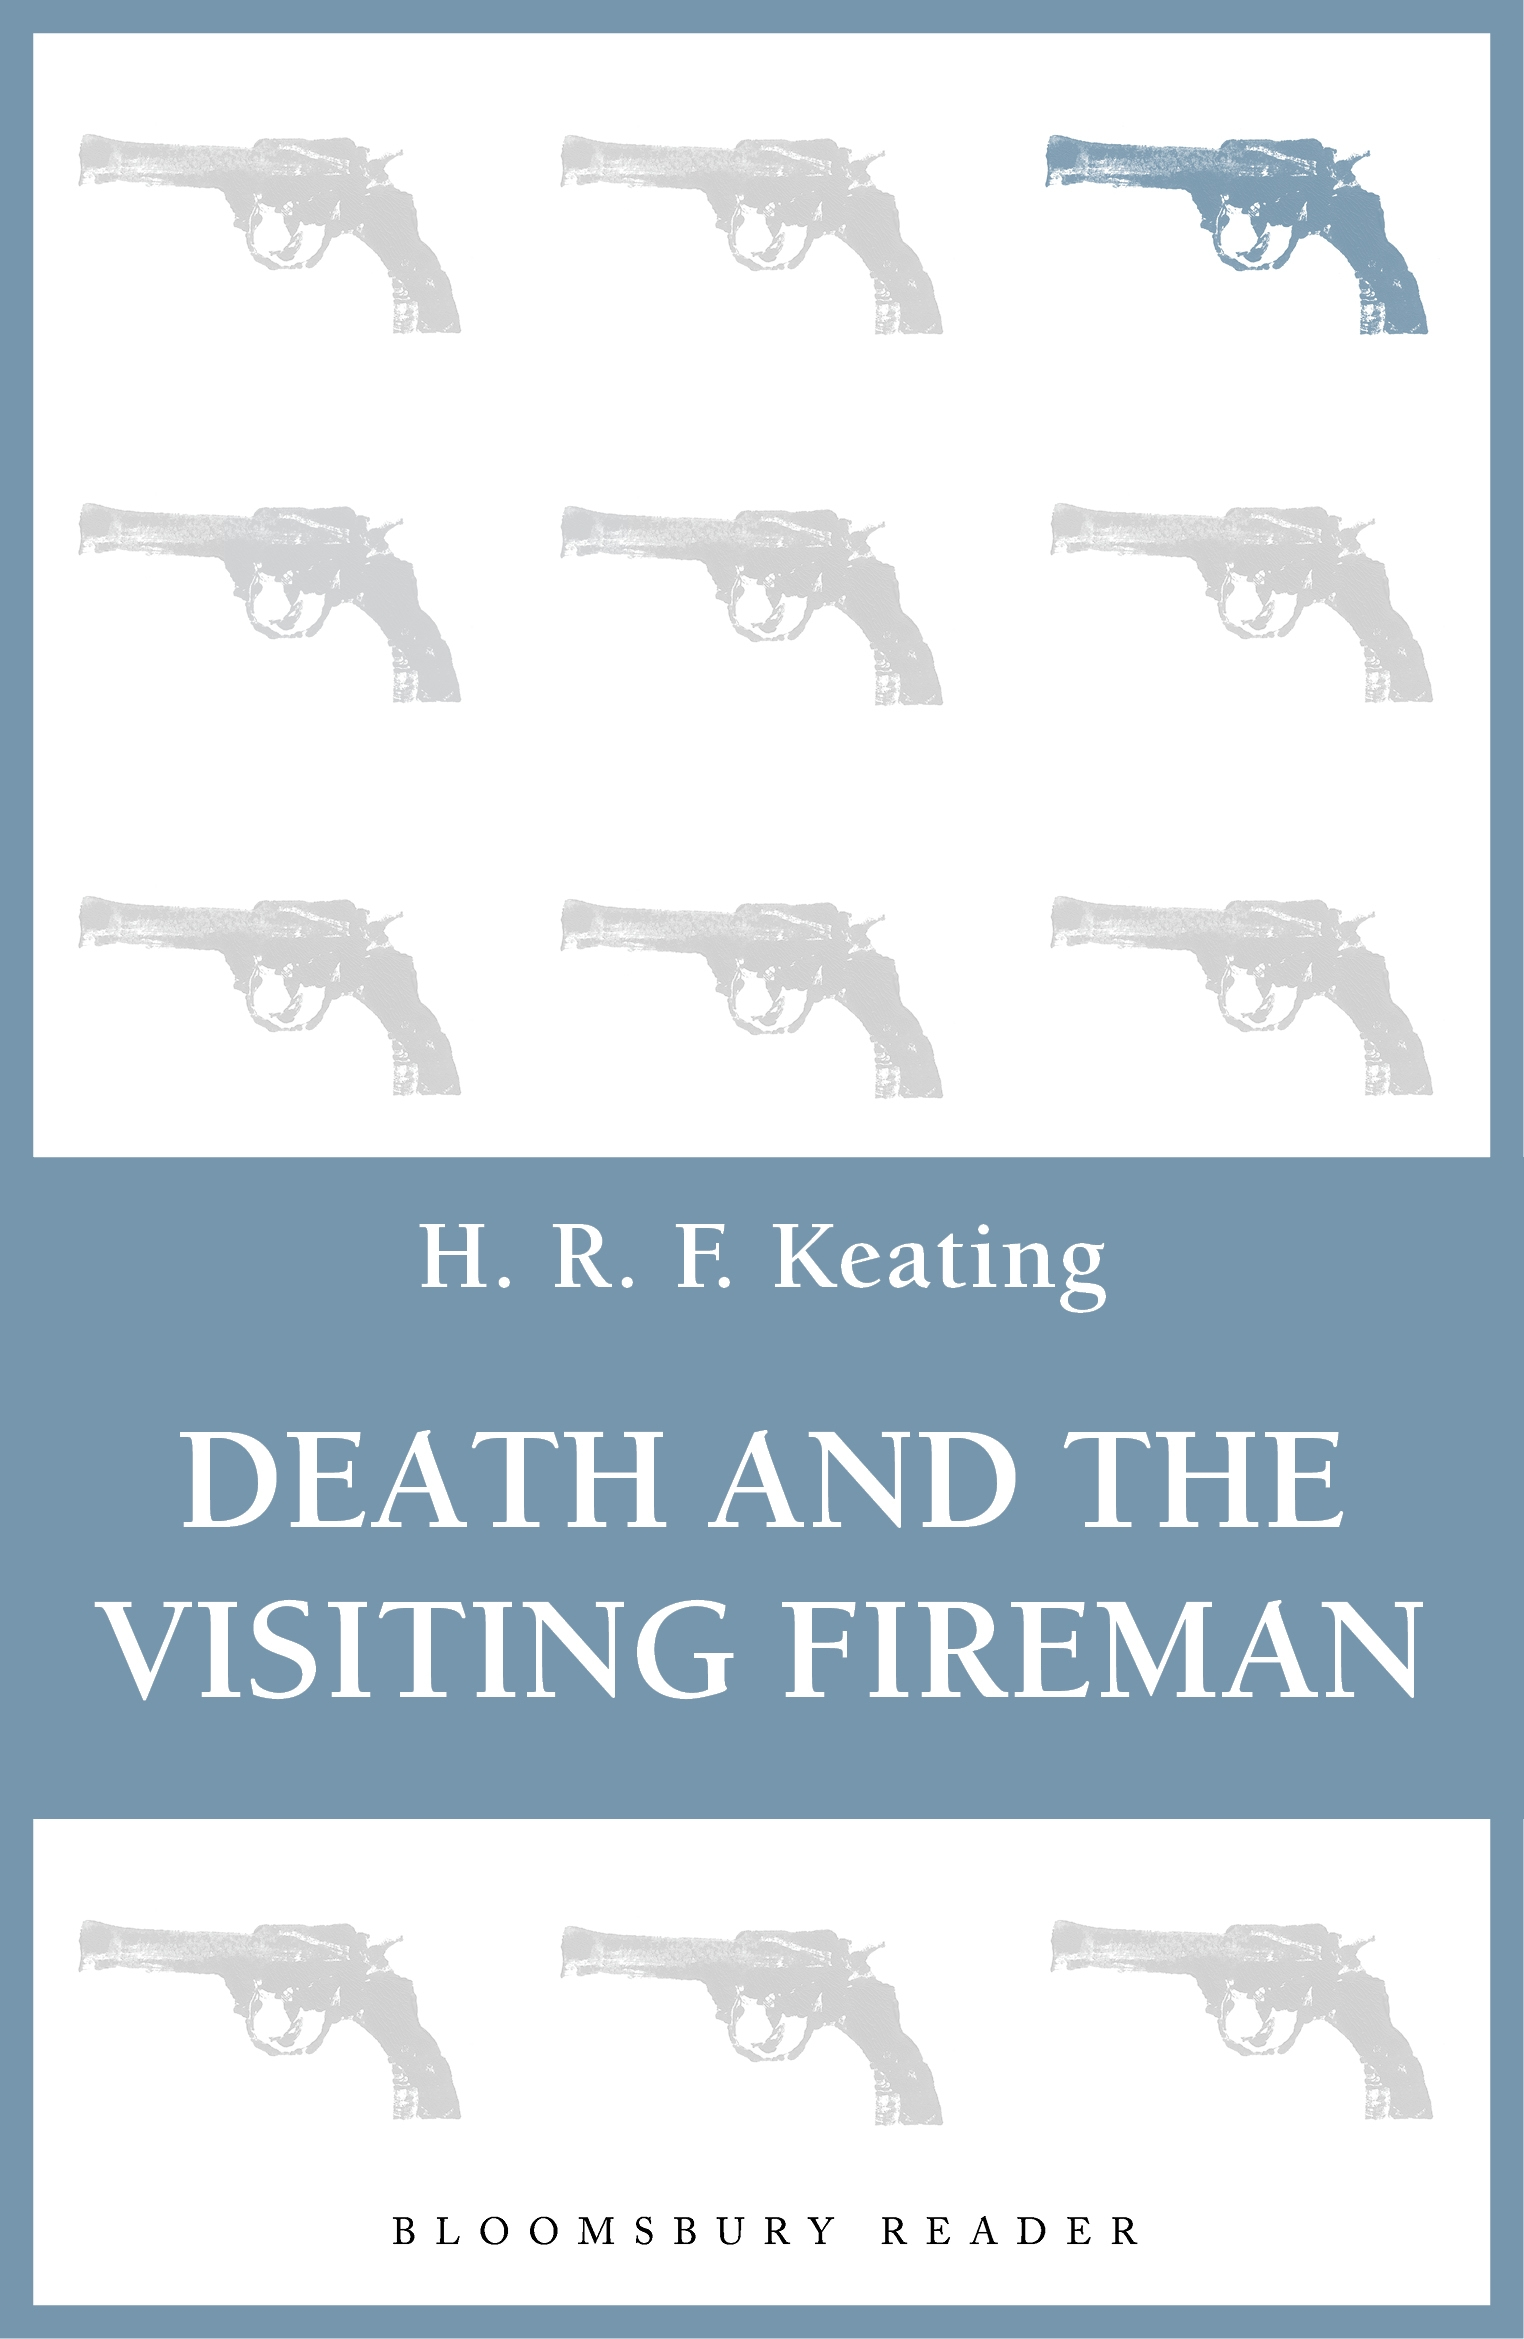 Death and the Visiting Fireman By: H. R. F. Keating